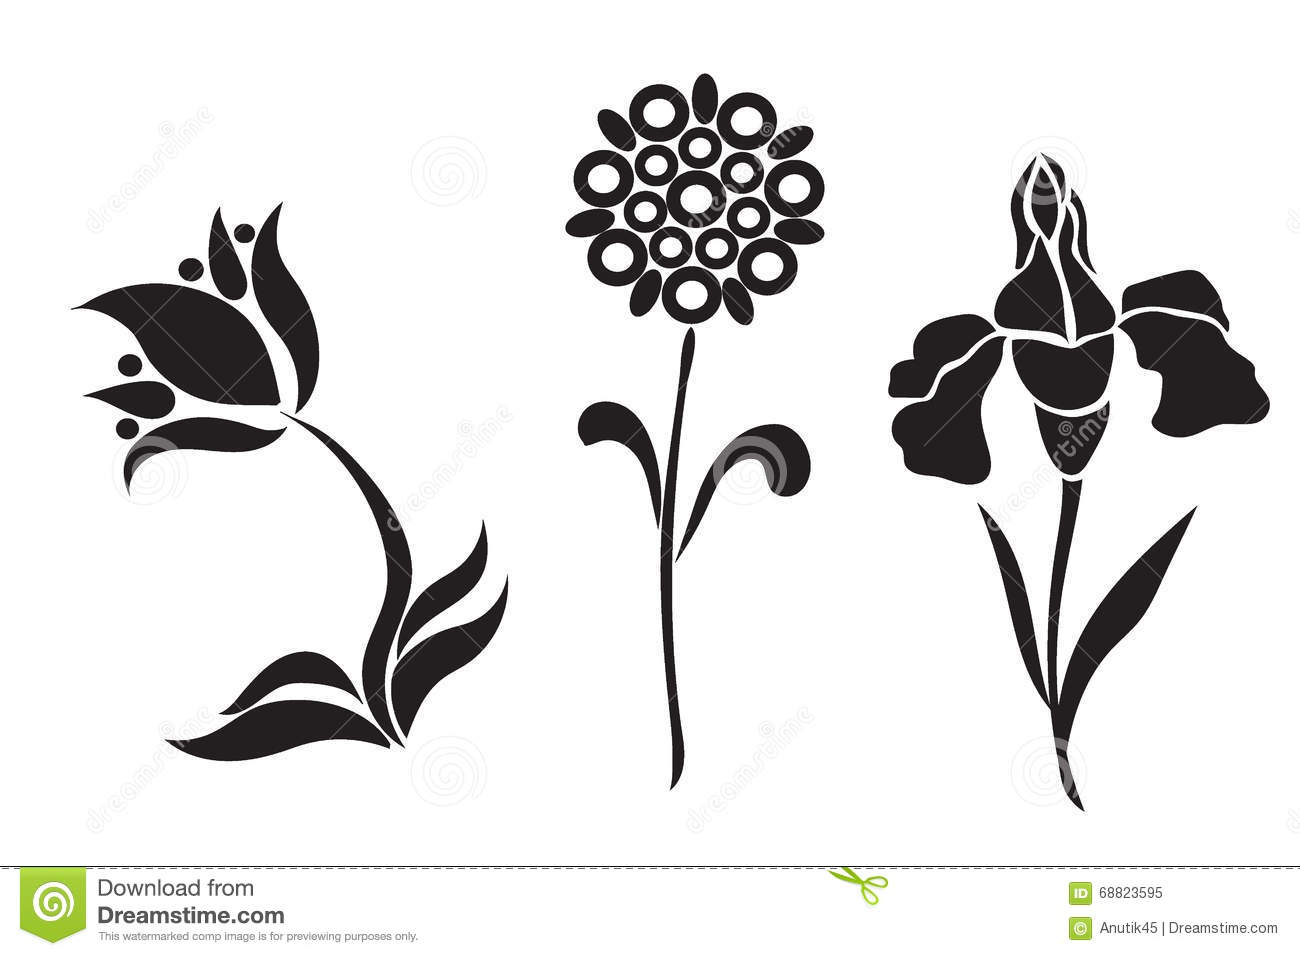 Flowers graphic design free Graphic Design Of Flowers, Vector Illustration Stock Vector ... free